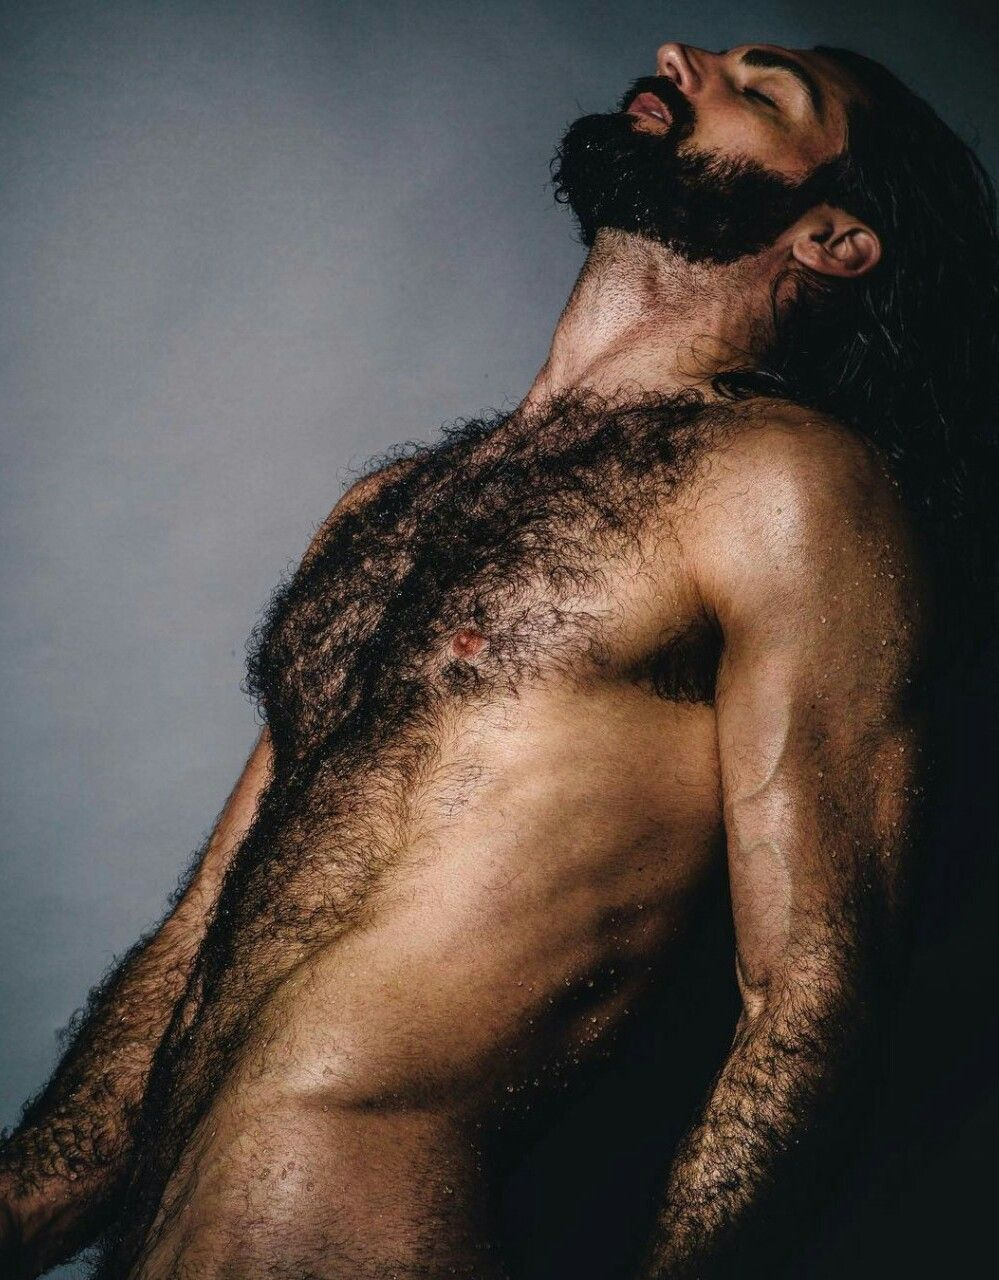 Hairy Guys Are The Hottest! : Photo More